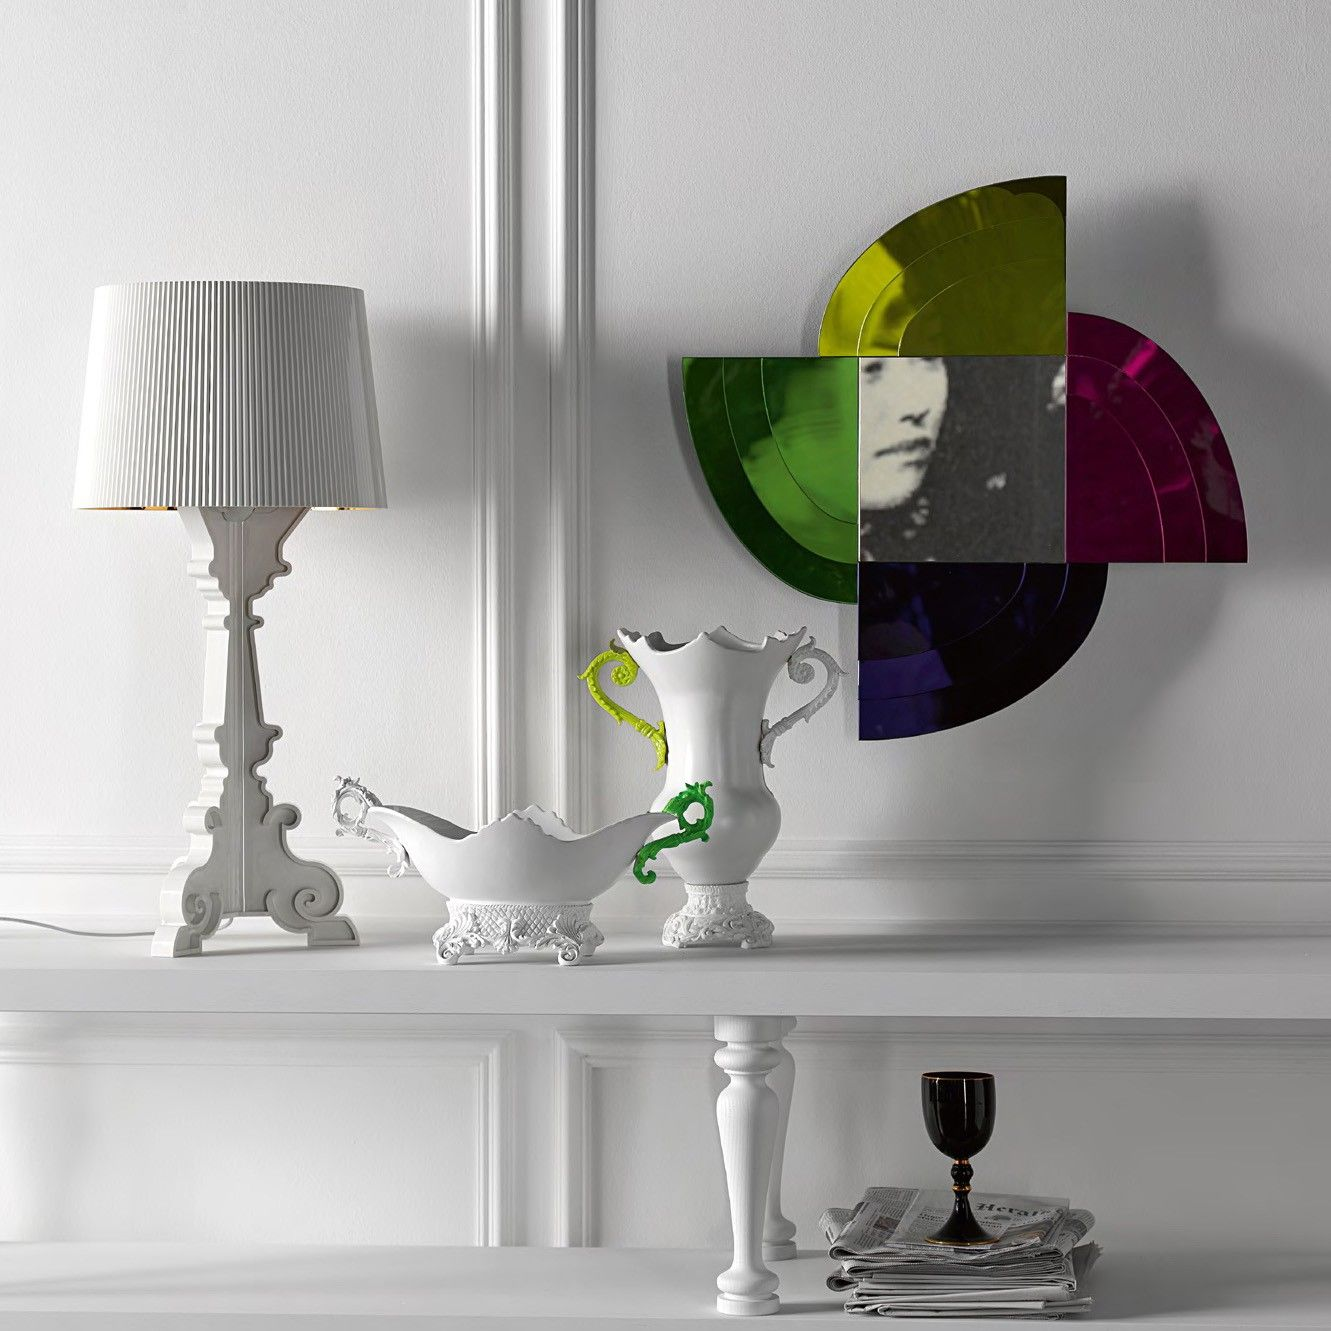 Designed By Ferruccio Laviani For Kartell The Bourgie Lamp White